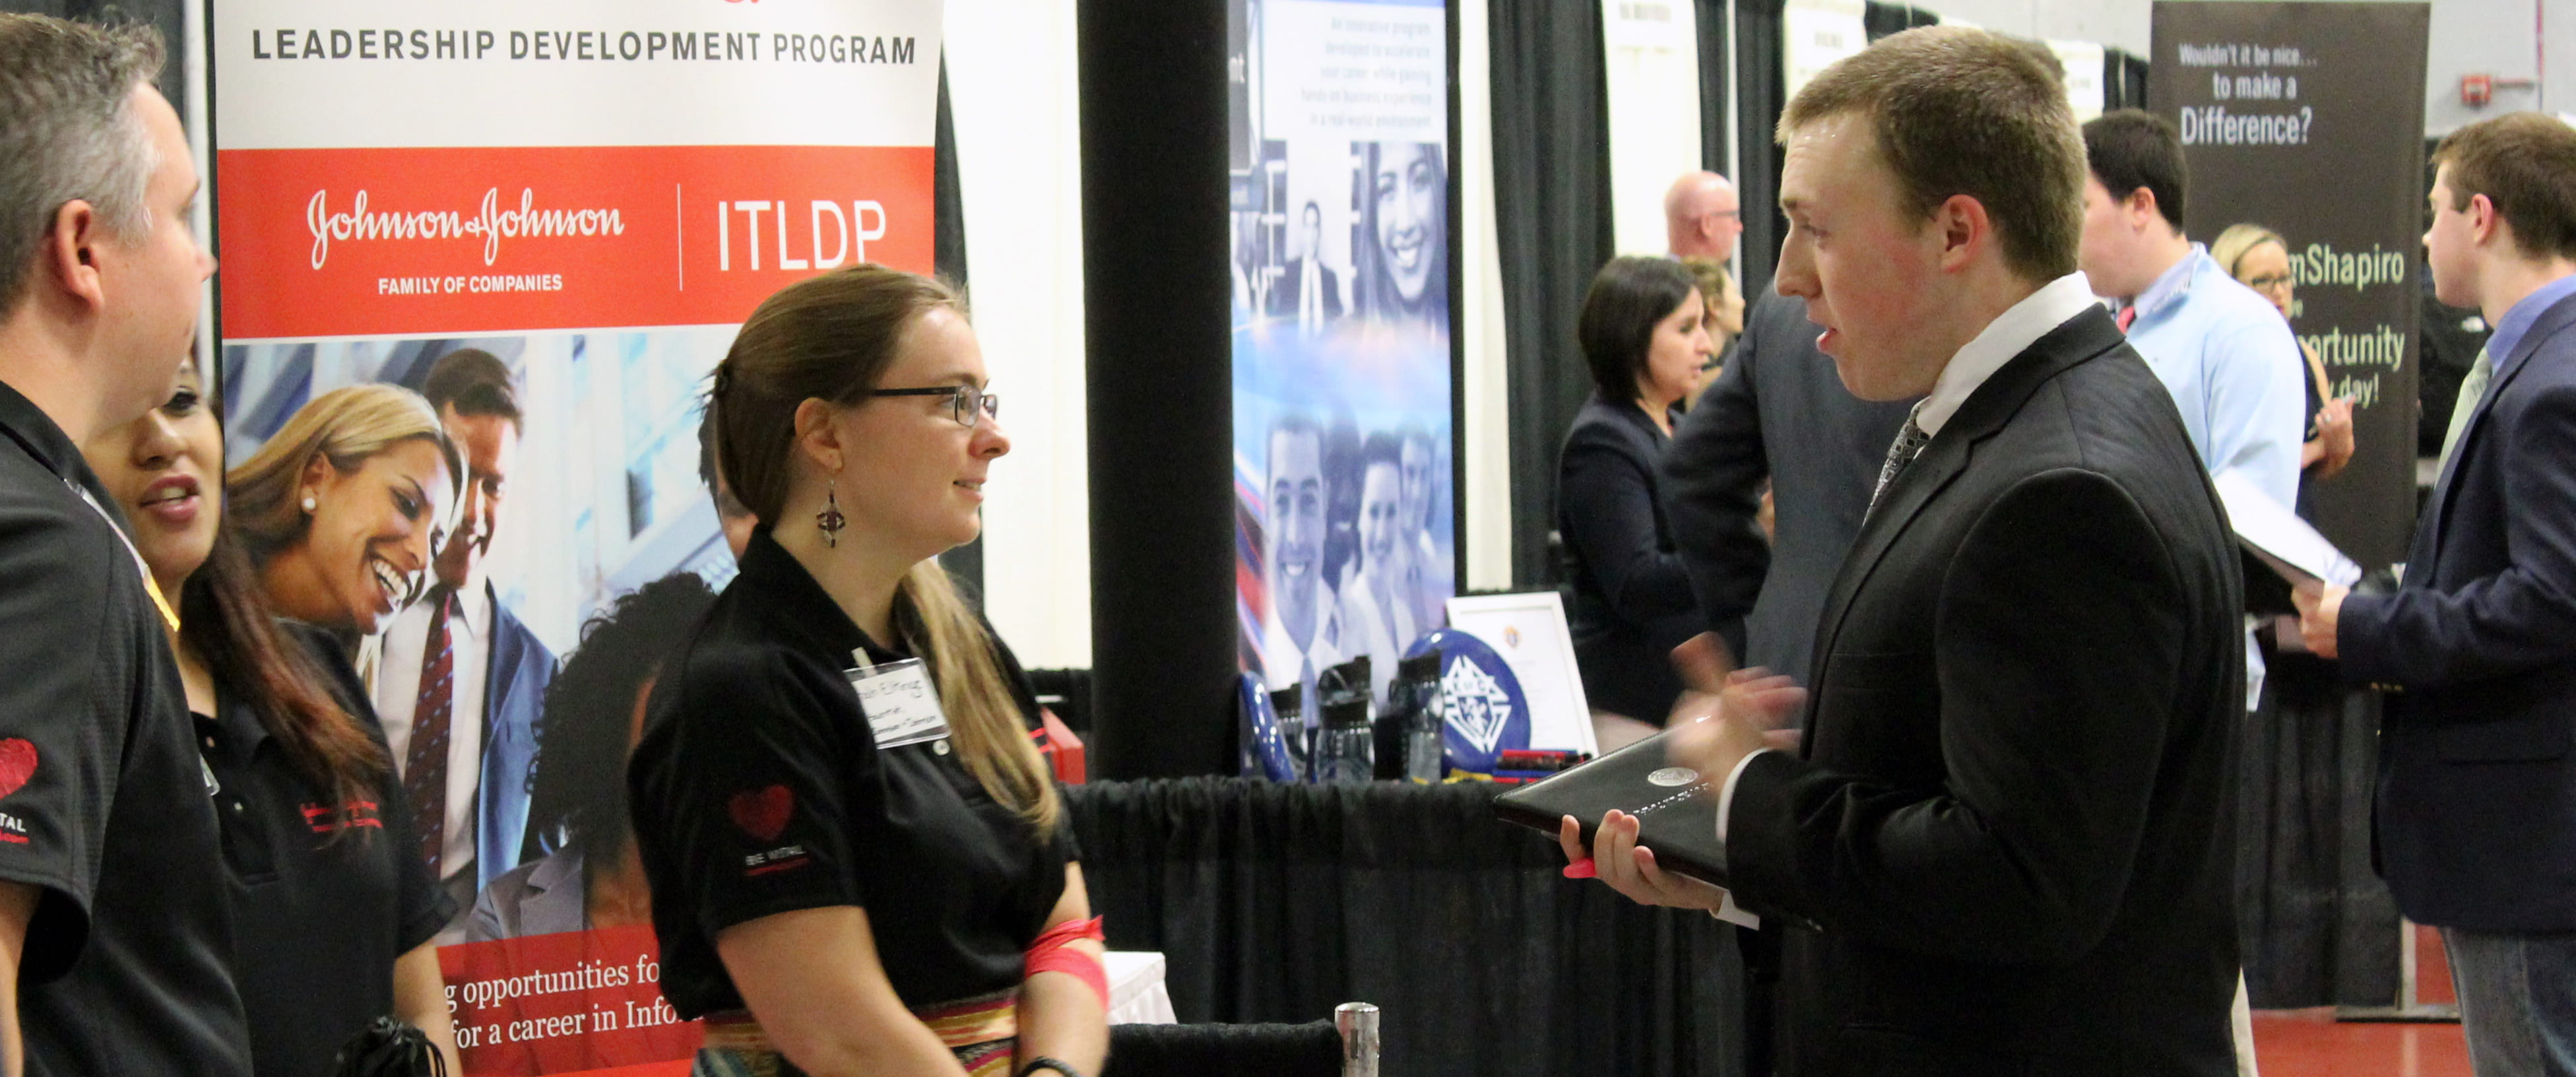 student in suit at career expo talking to recruiter about leadership development program